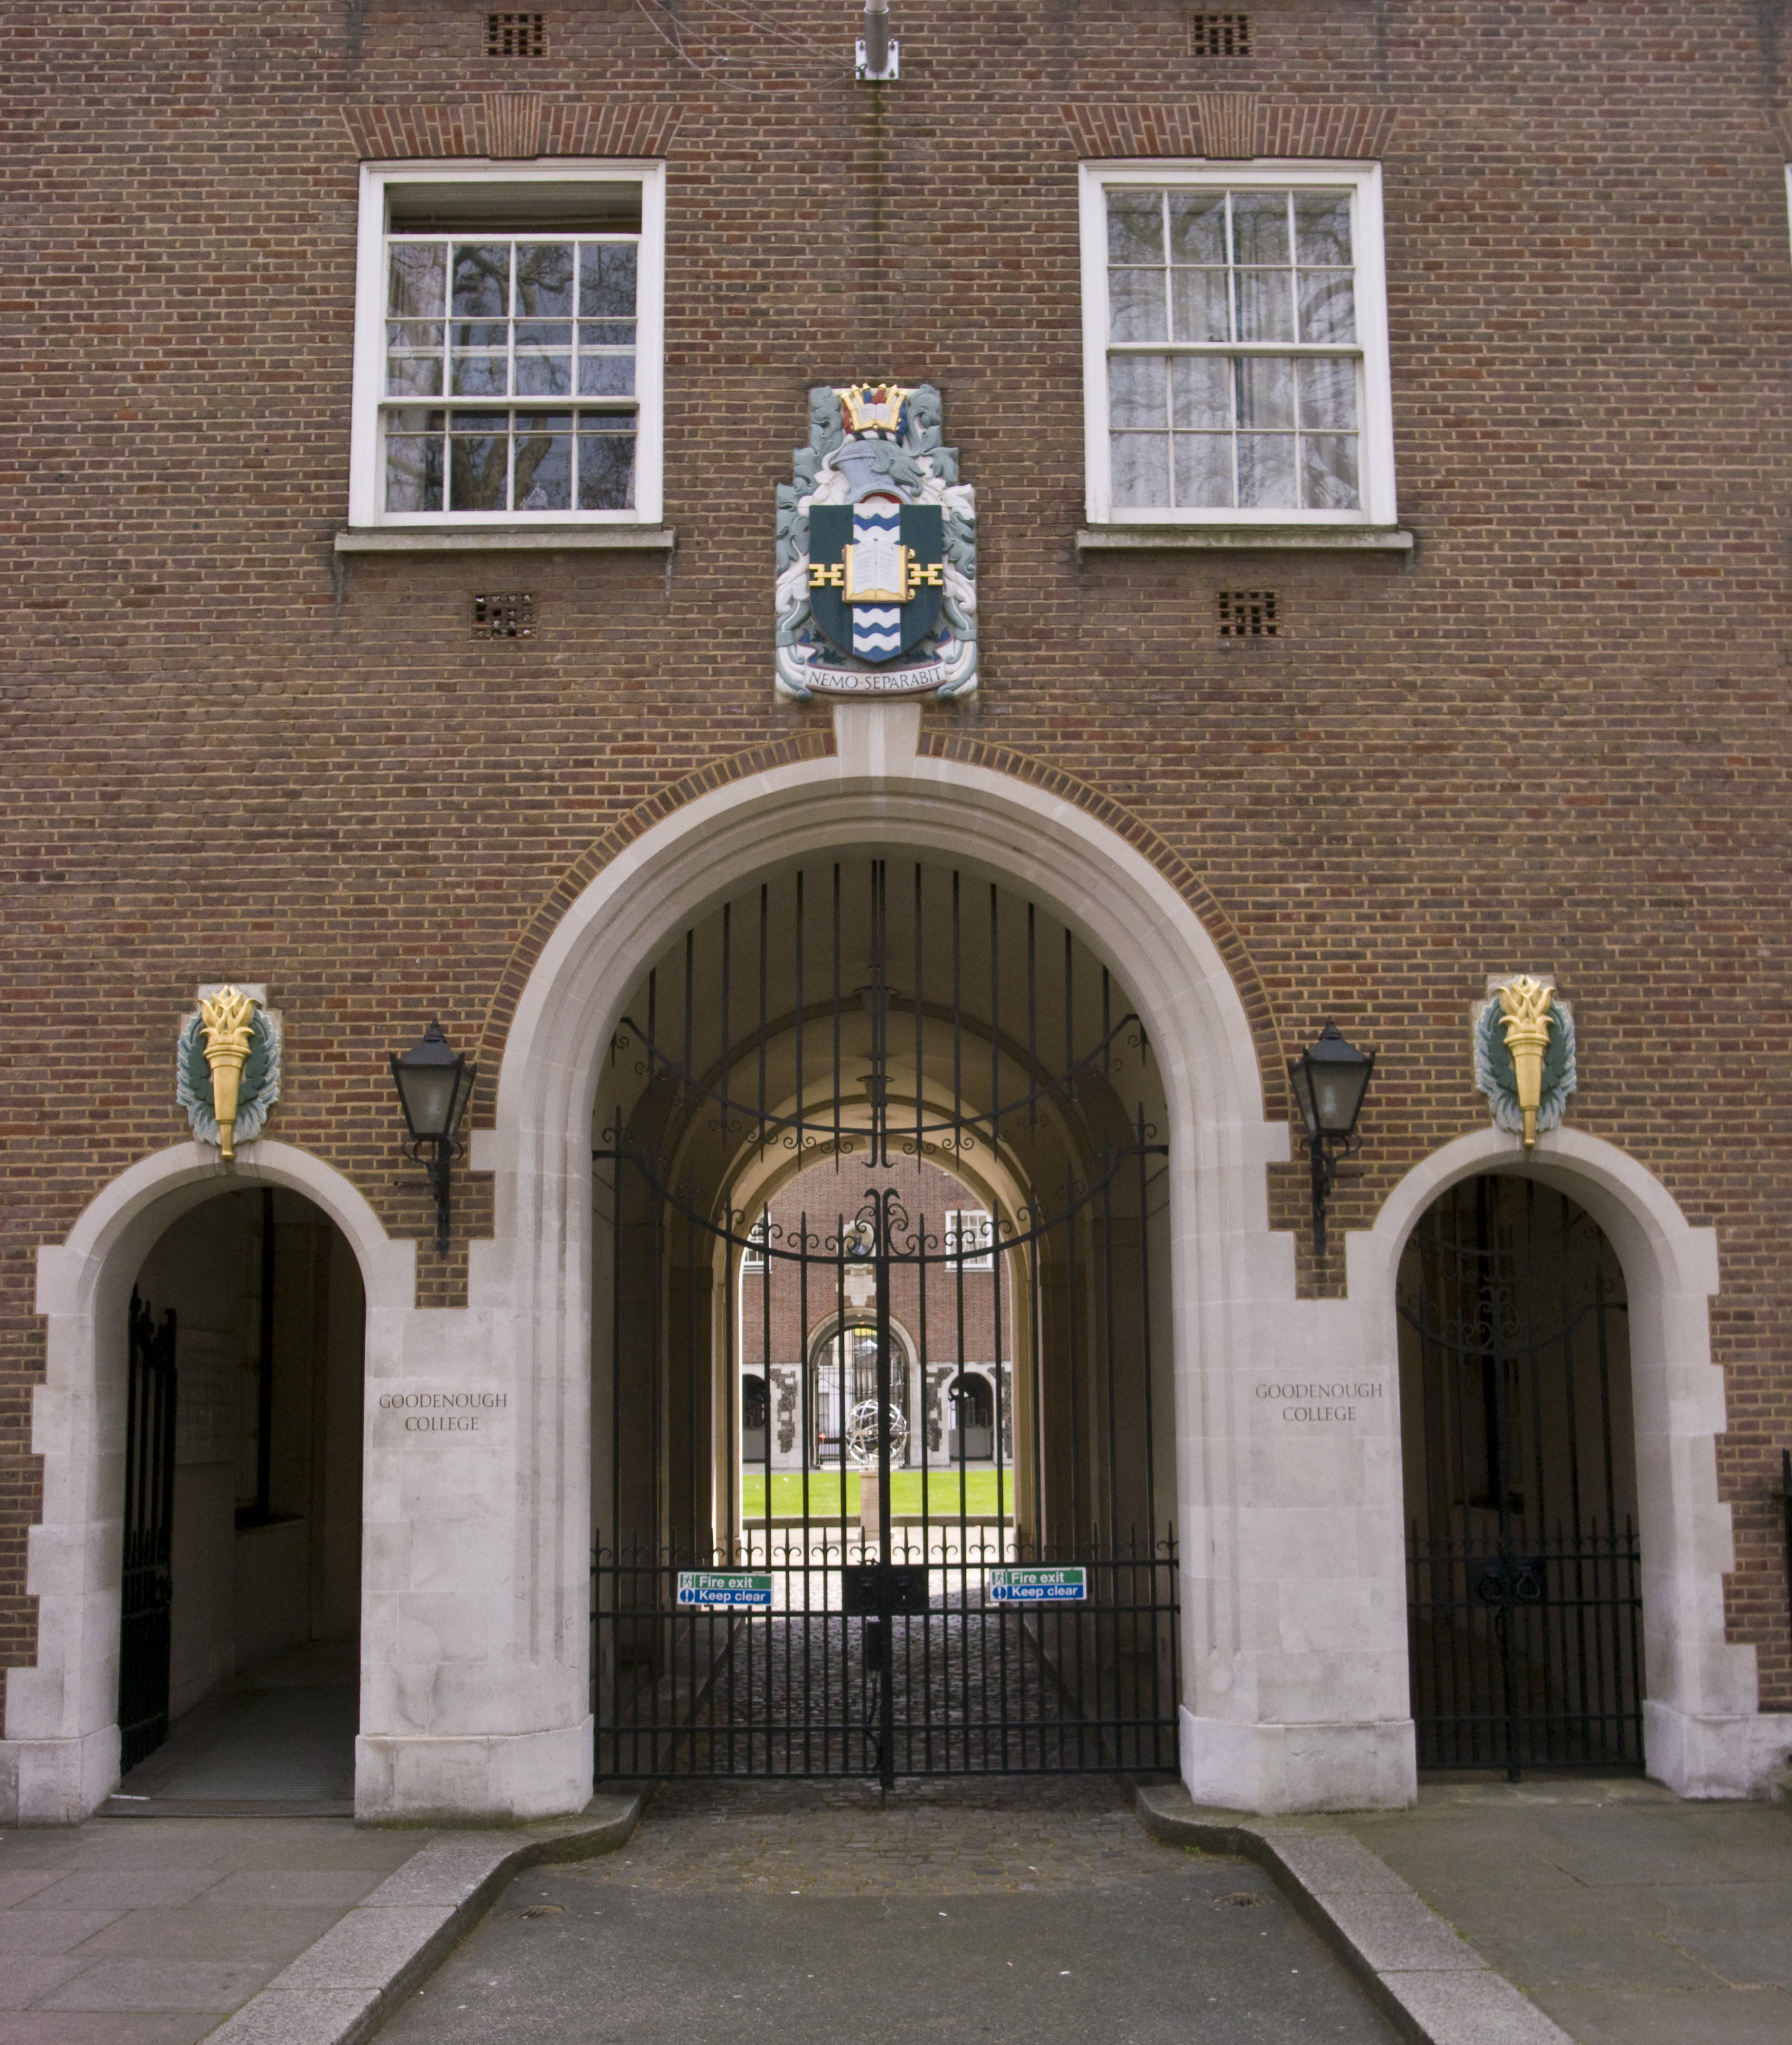 College Entrance?